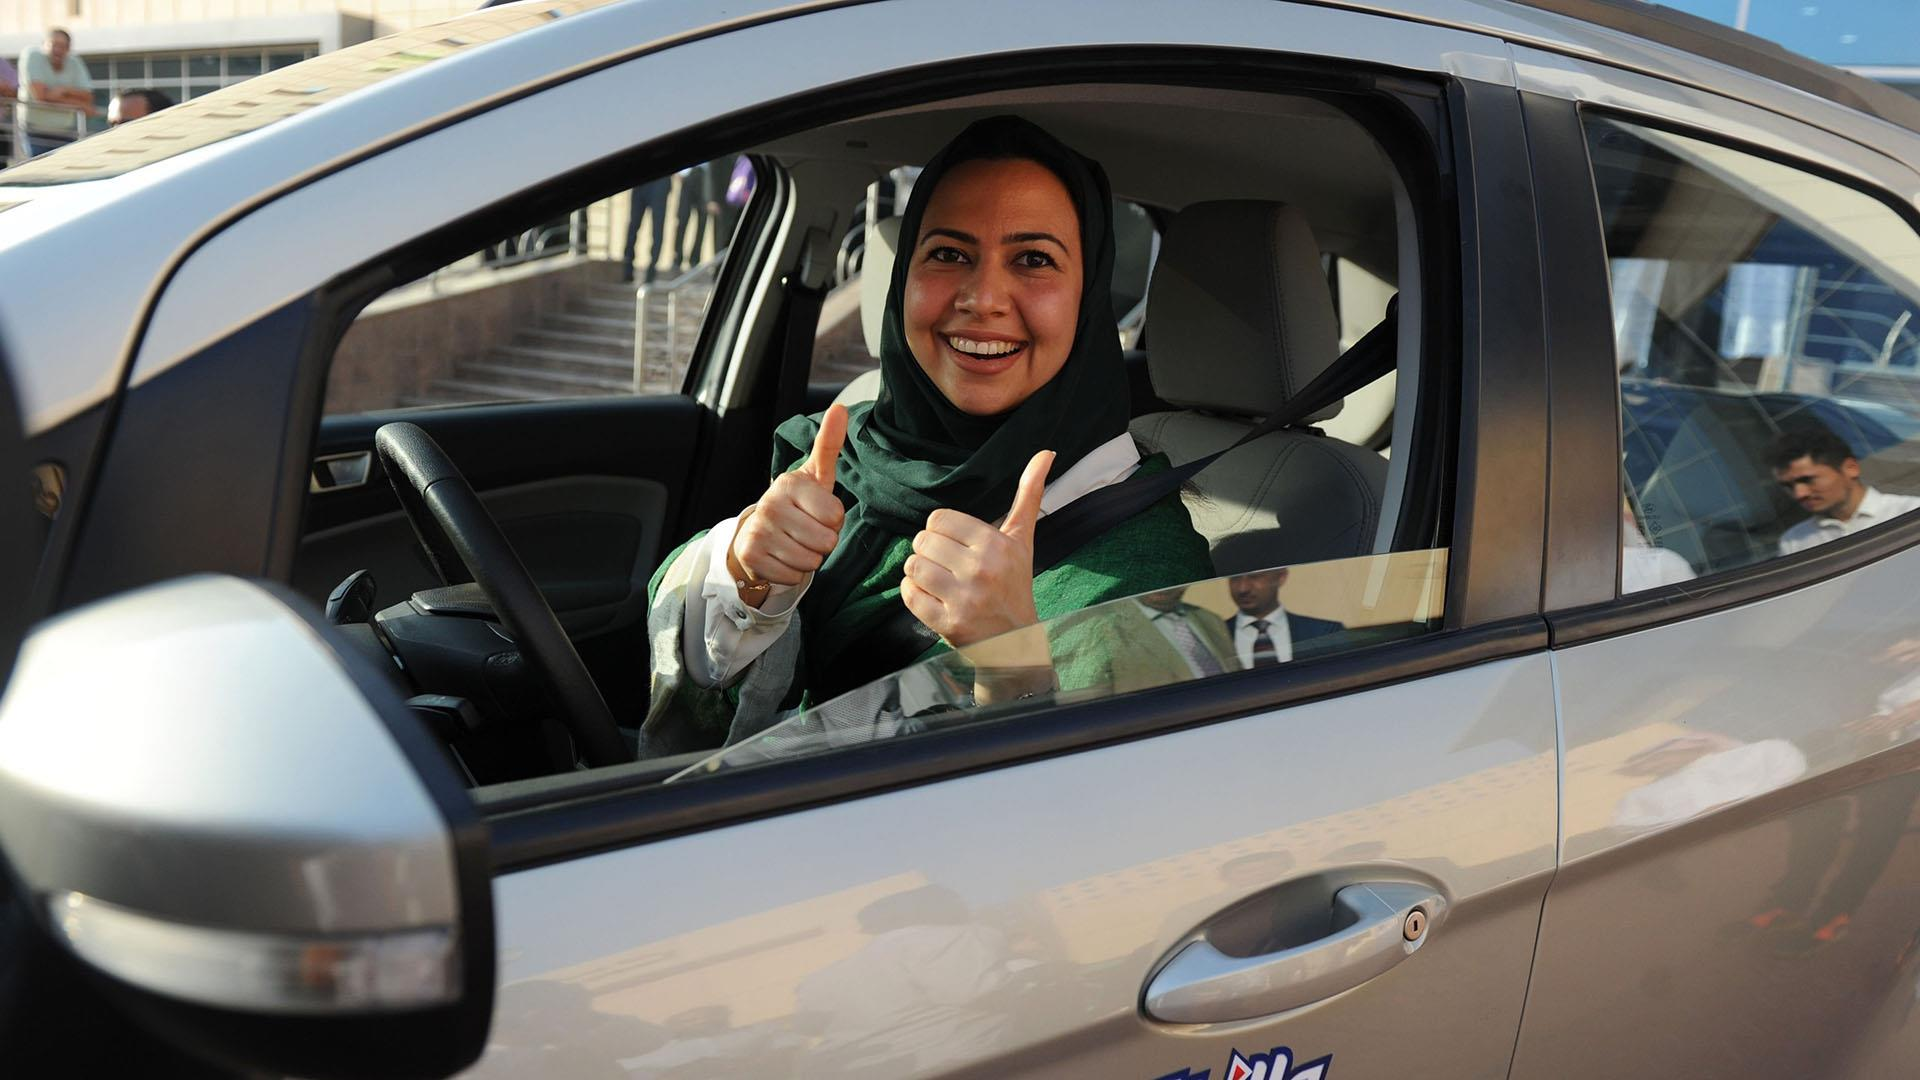 Women in Saudi Arabia will be allowed to drive cars from June 2018